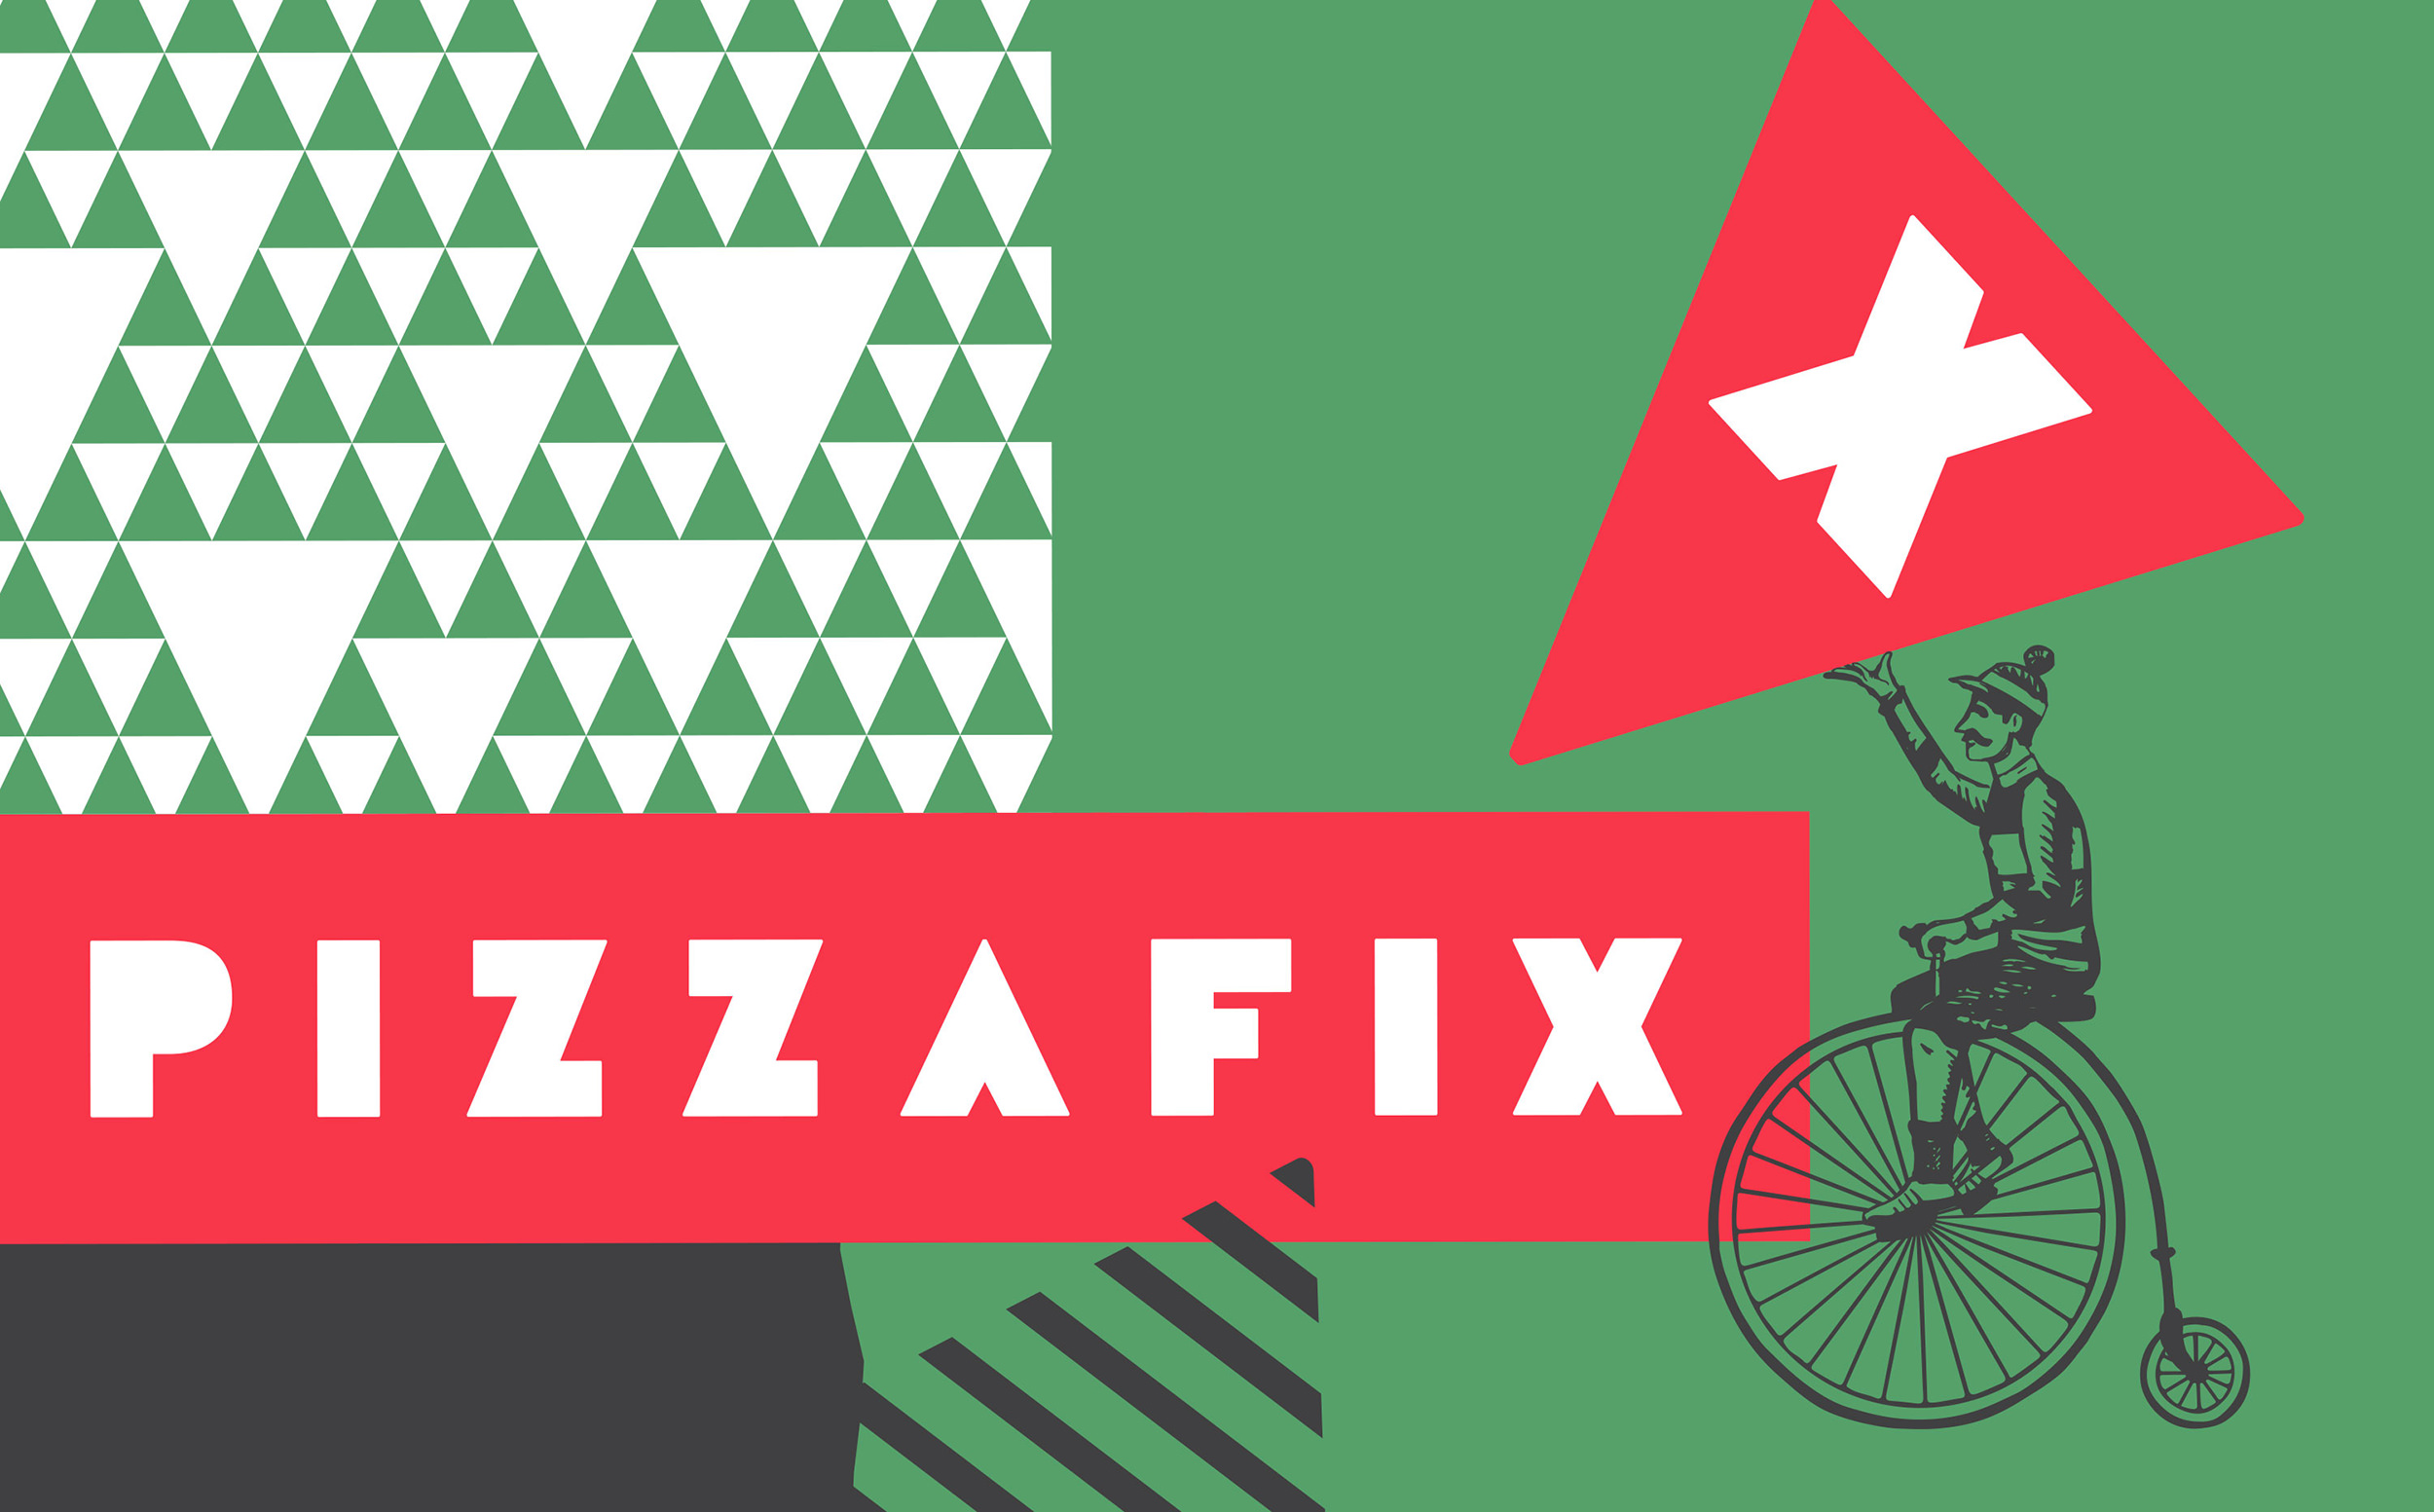 Chad Roberts Design Ltd. Pizzafix Brand Identity Design